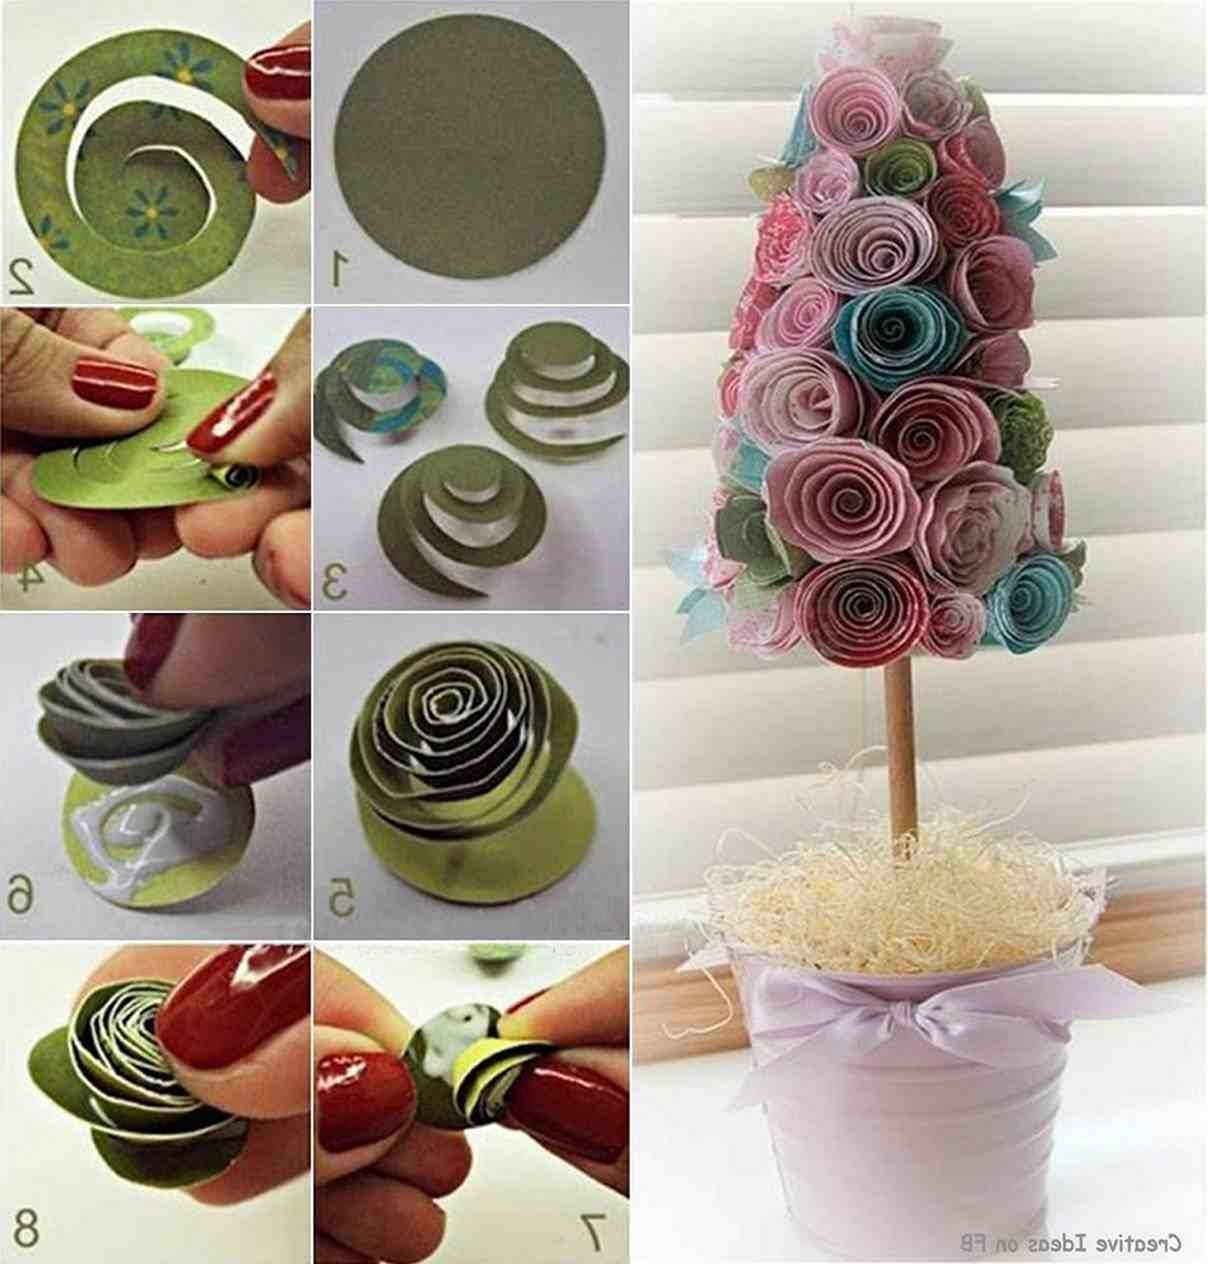 45 Easy Diy Home Decoration Ideas On A Budget Decor Gardening Ideas Diy And Crafts Sewing Crafts Decor Crafts